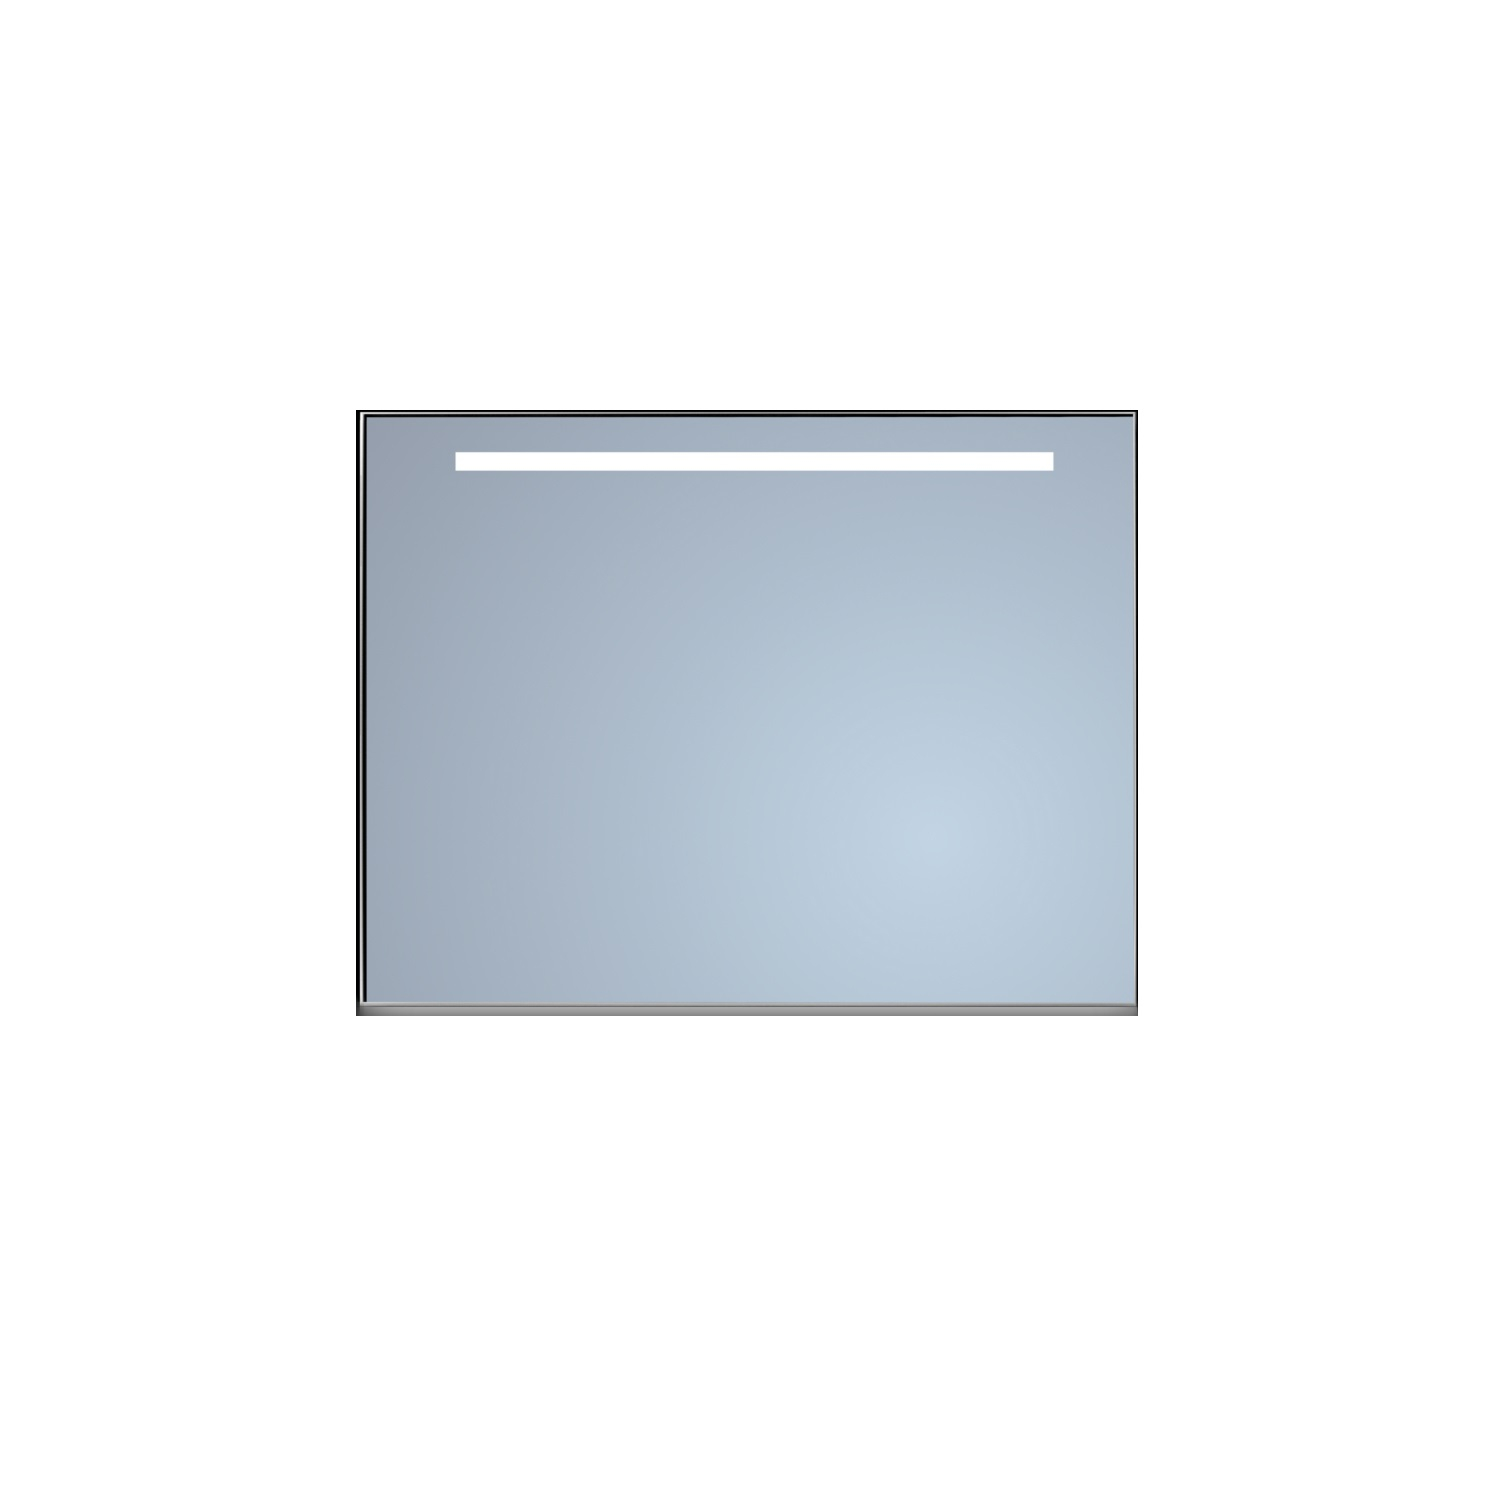 Badkamerspiegel Sanicare Q-Mirrors Ambiance en 'Cold White' LED-verlichting 70x120x3,5 Chroom Omlijsting